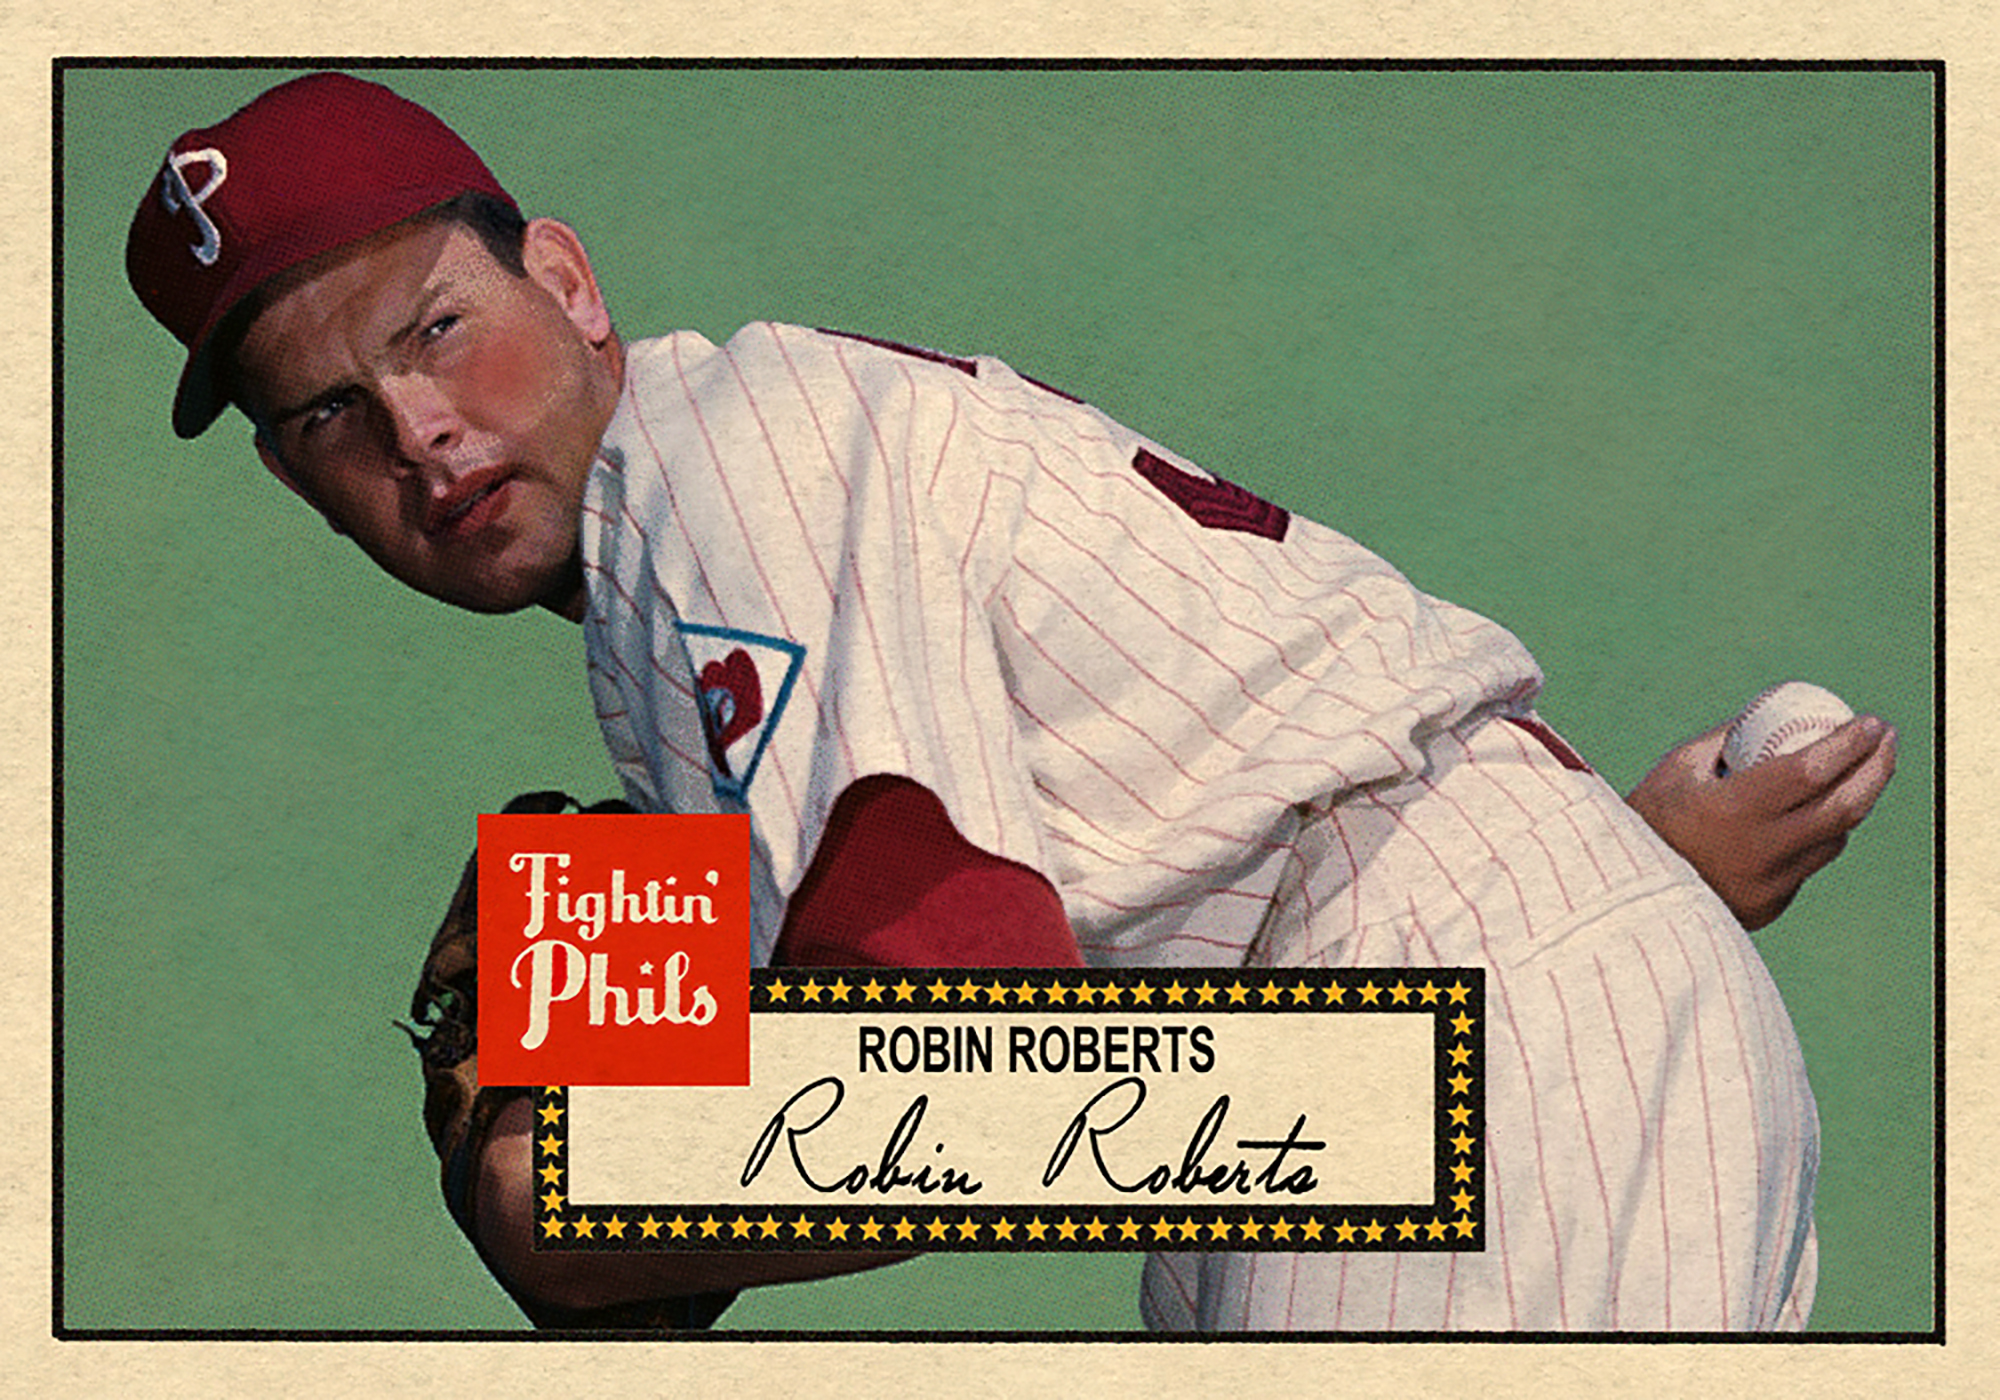 1952 BASEBALL STARS SERIES #186 ROBIN ROBERTS 2/20/17 Auction closes at $150.50 USD - Current Population of 2